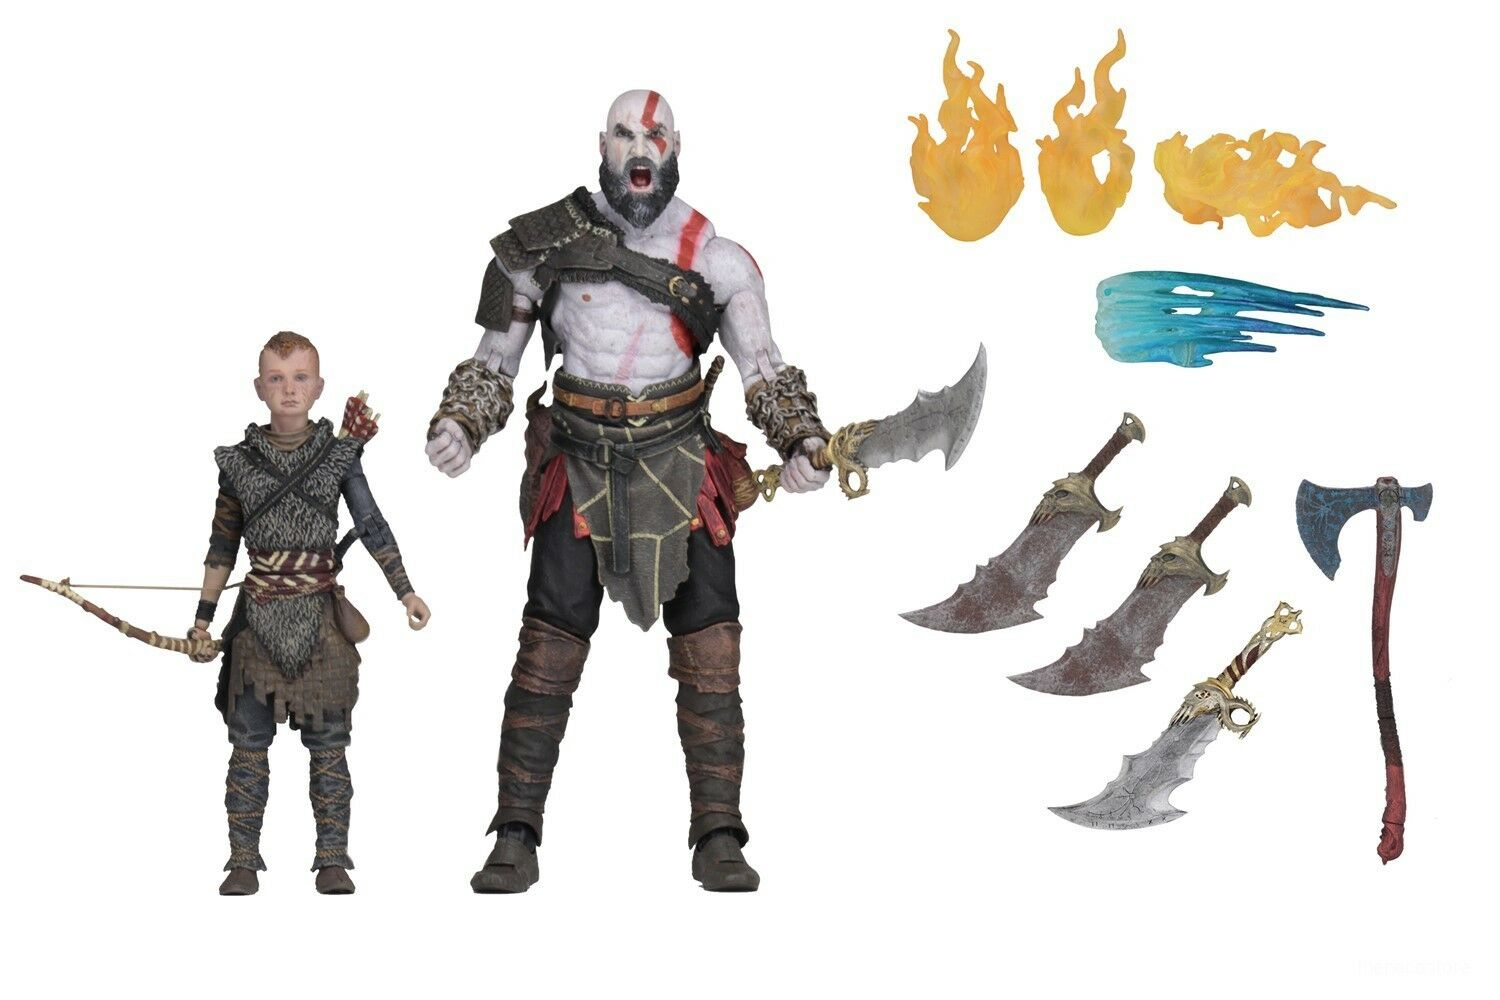 Gott des krieges (2018) - 7  - skala action figure set - ultimate kratos & atreus - neca